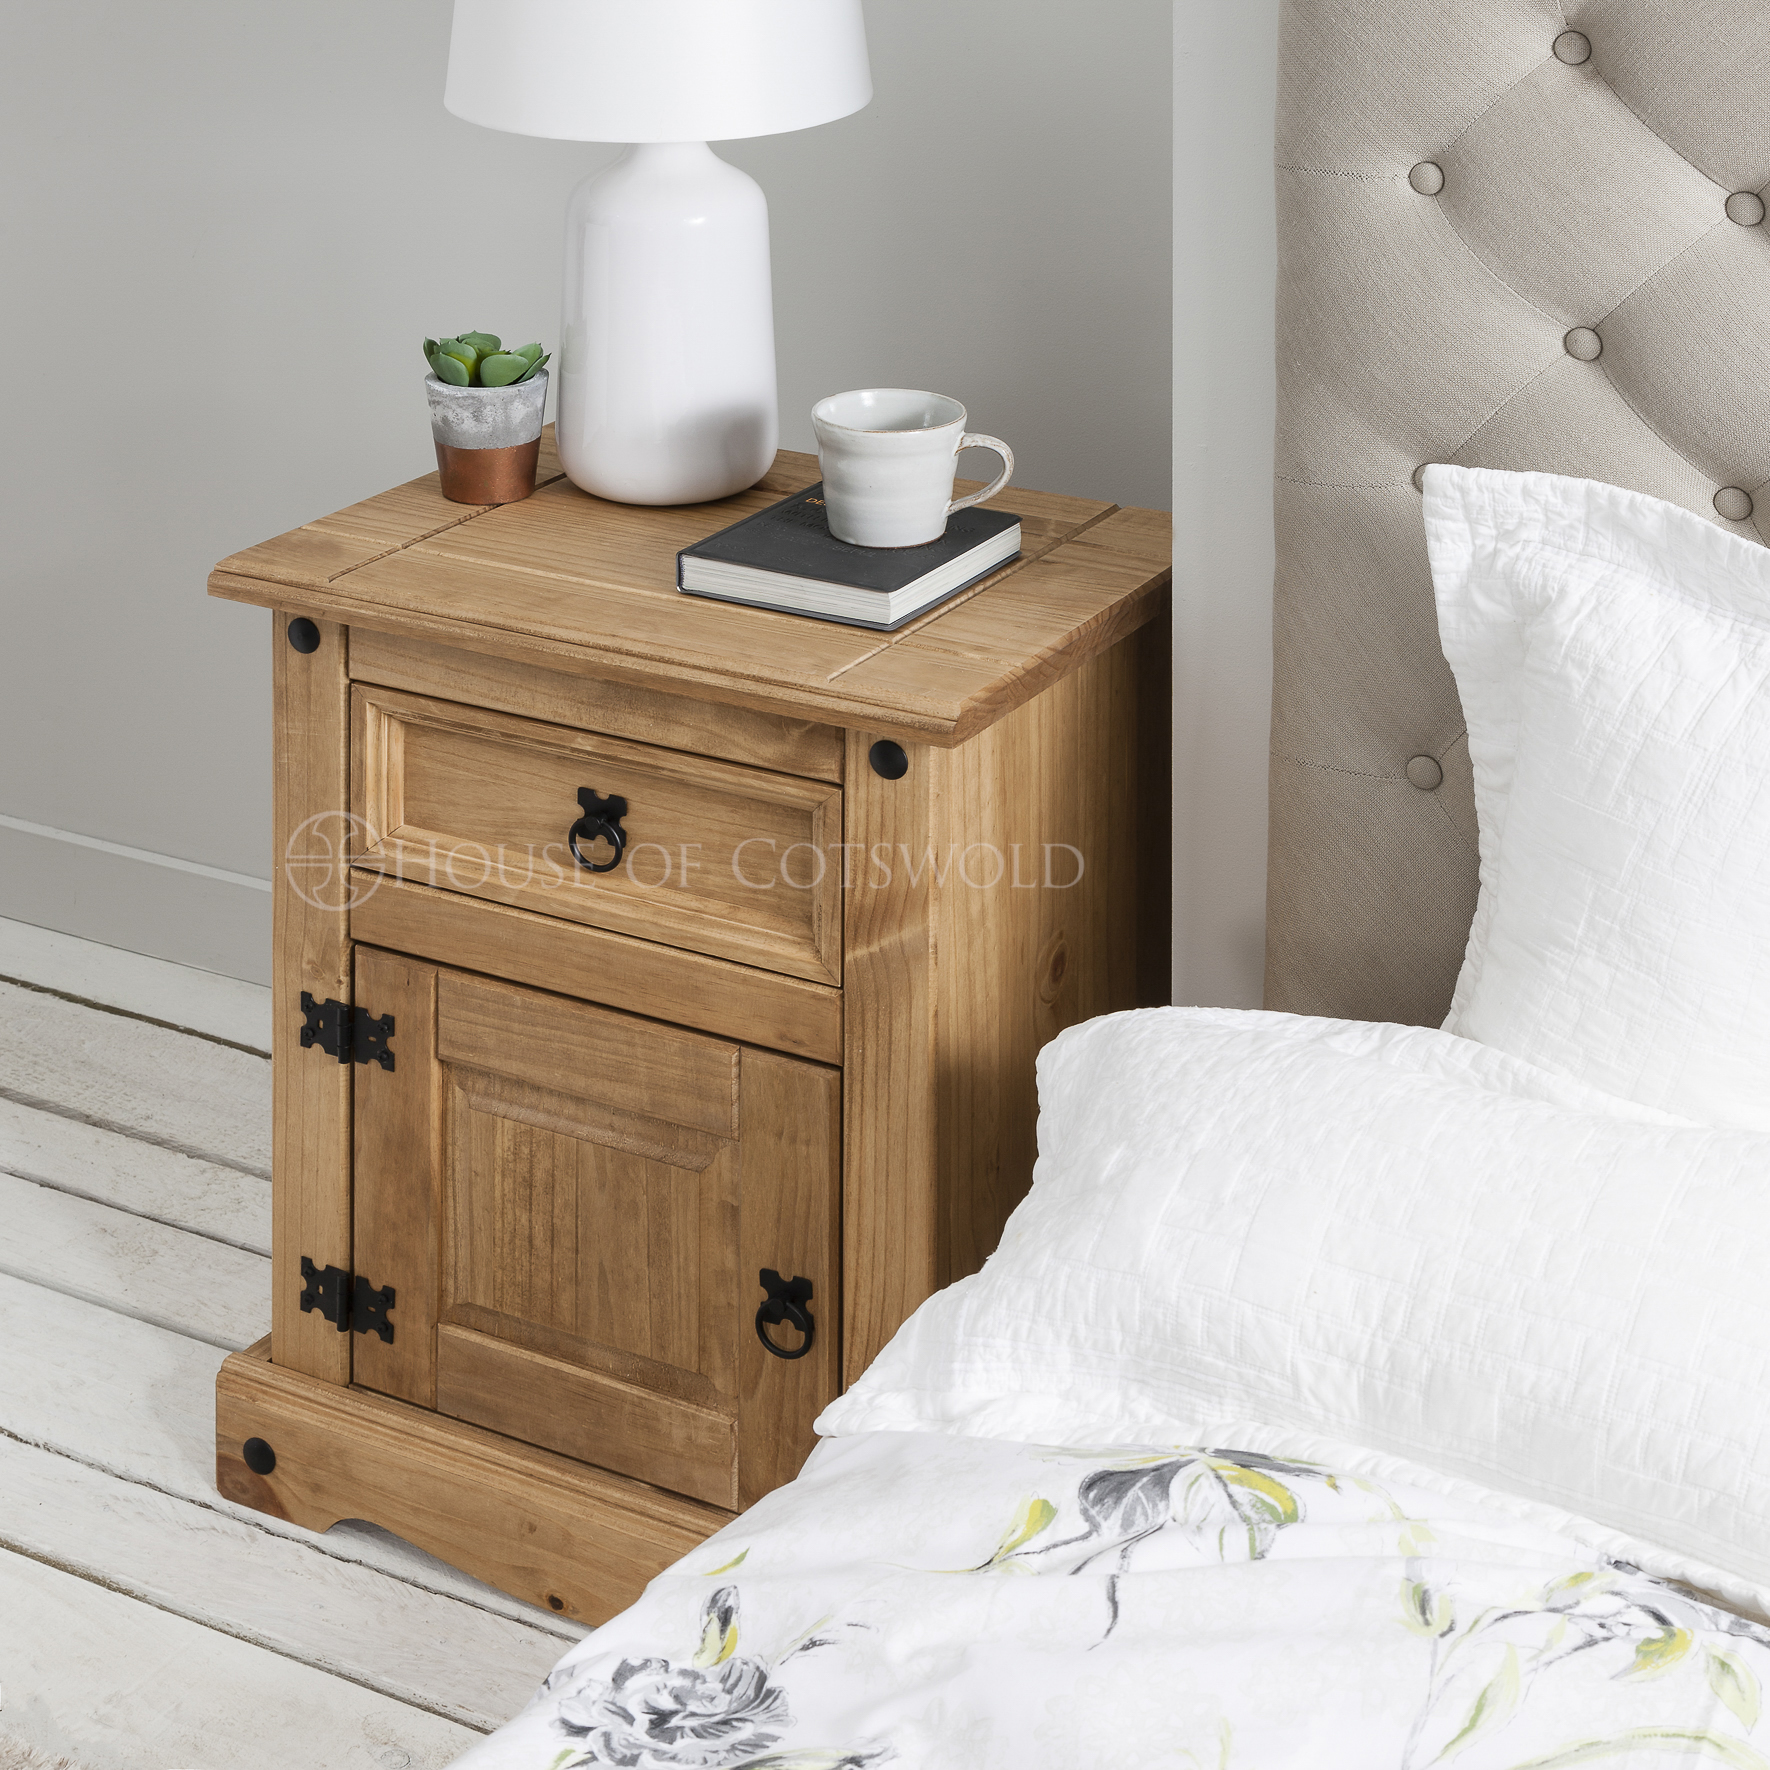 House Of Cotswolds Bedside Table Rustic Design 3 Drawer Nightstand Corona Mexican Pine Bedside Tables